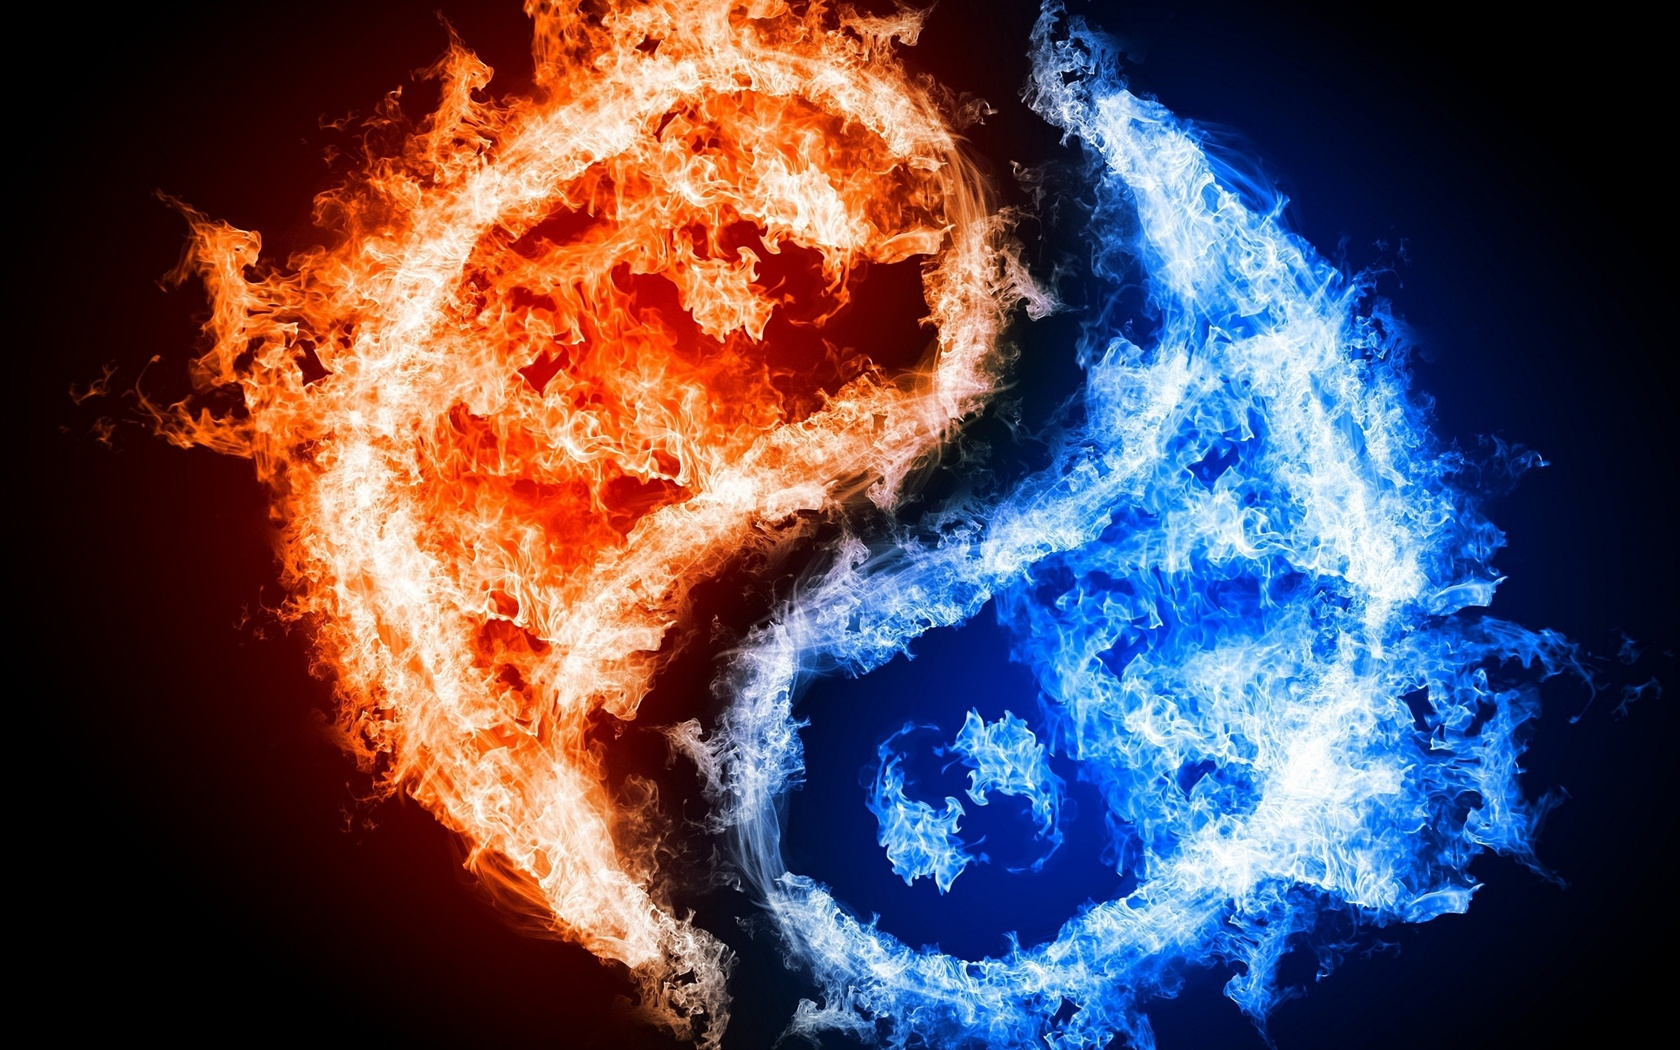 Tai Chi graphic blue and red flames wallpaper - 1680x1050